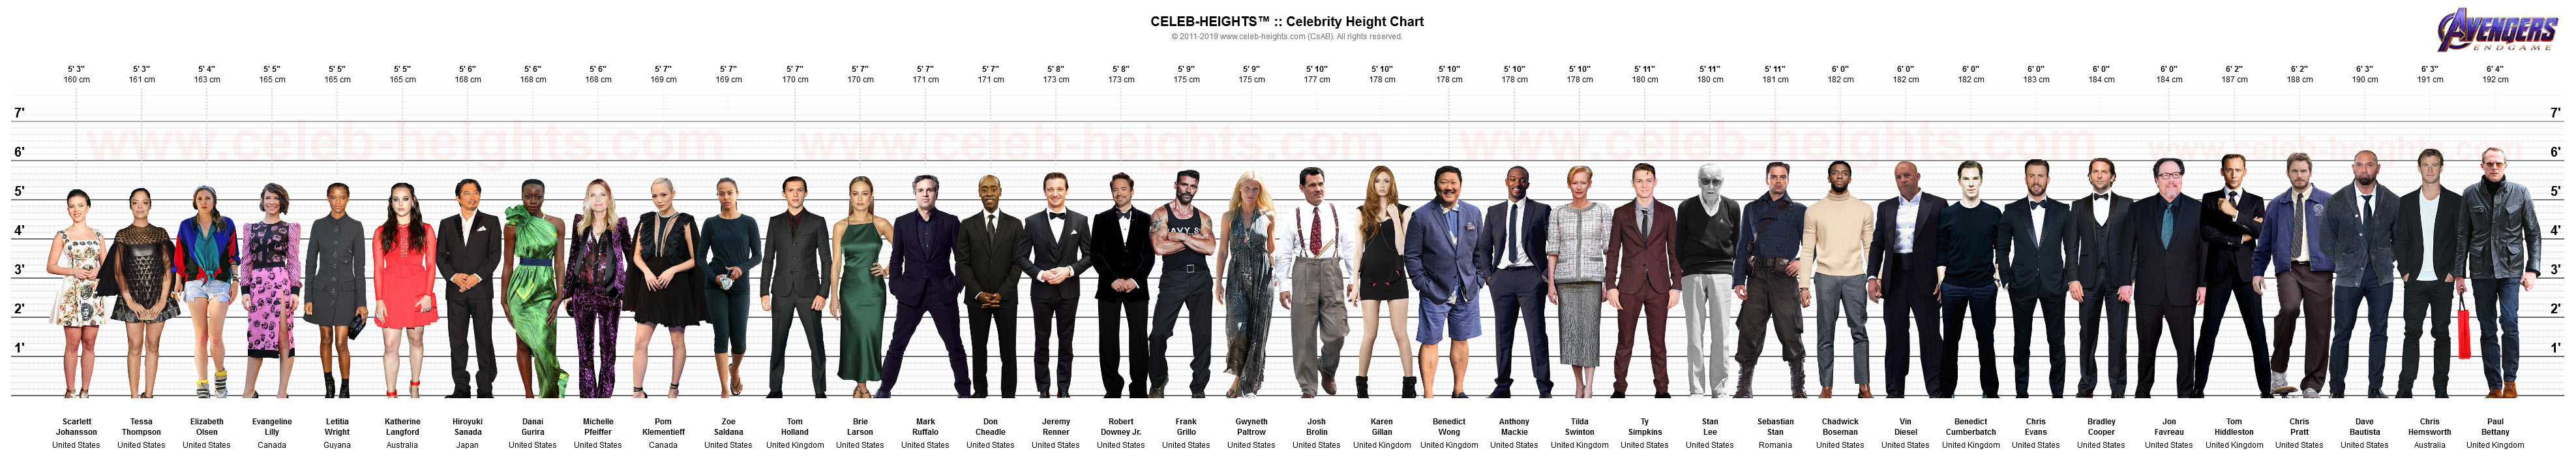 Paul Bettany on Height Chart